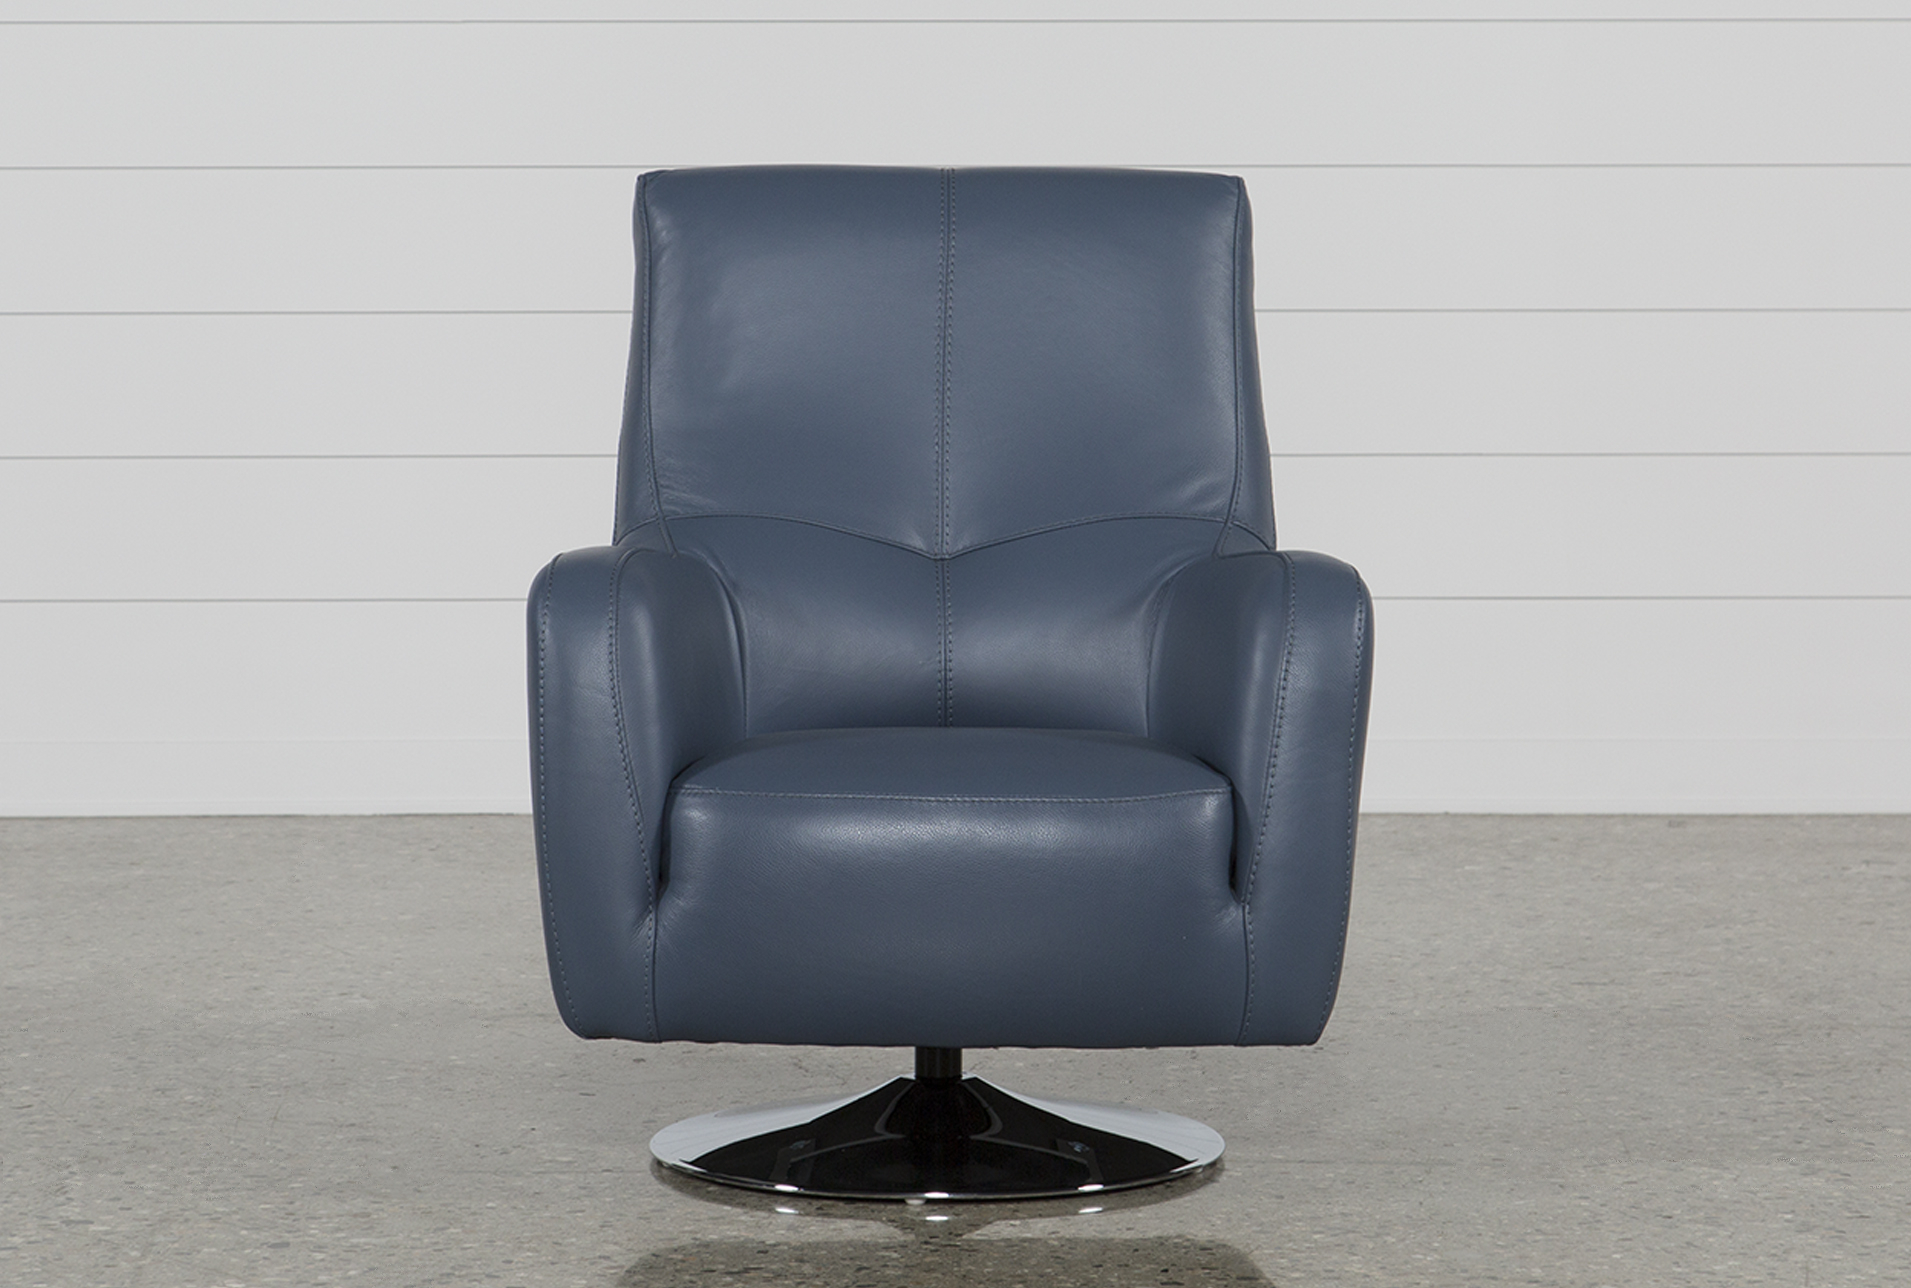 Kawai Leather Swivel Chair | Products | Pinterest | Leather Swivel in Amala Bone Leather Reclining Swivel Chairs